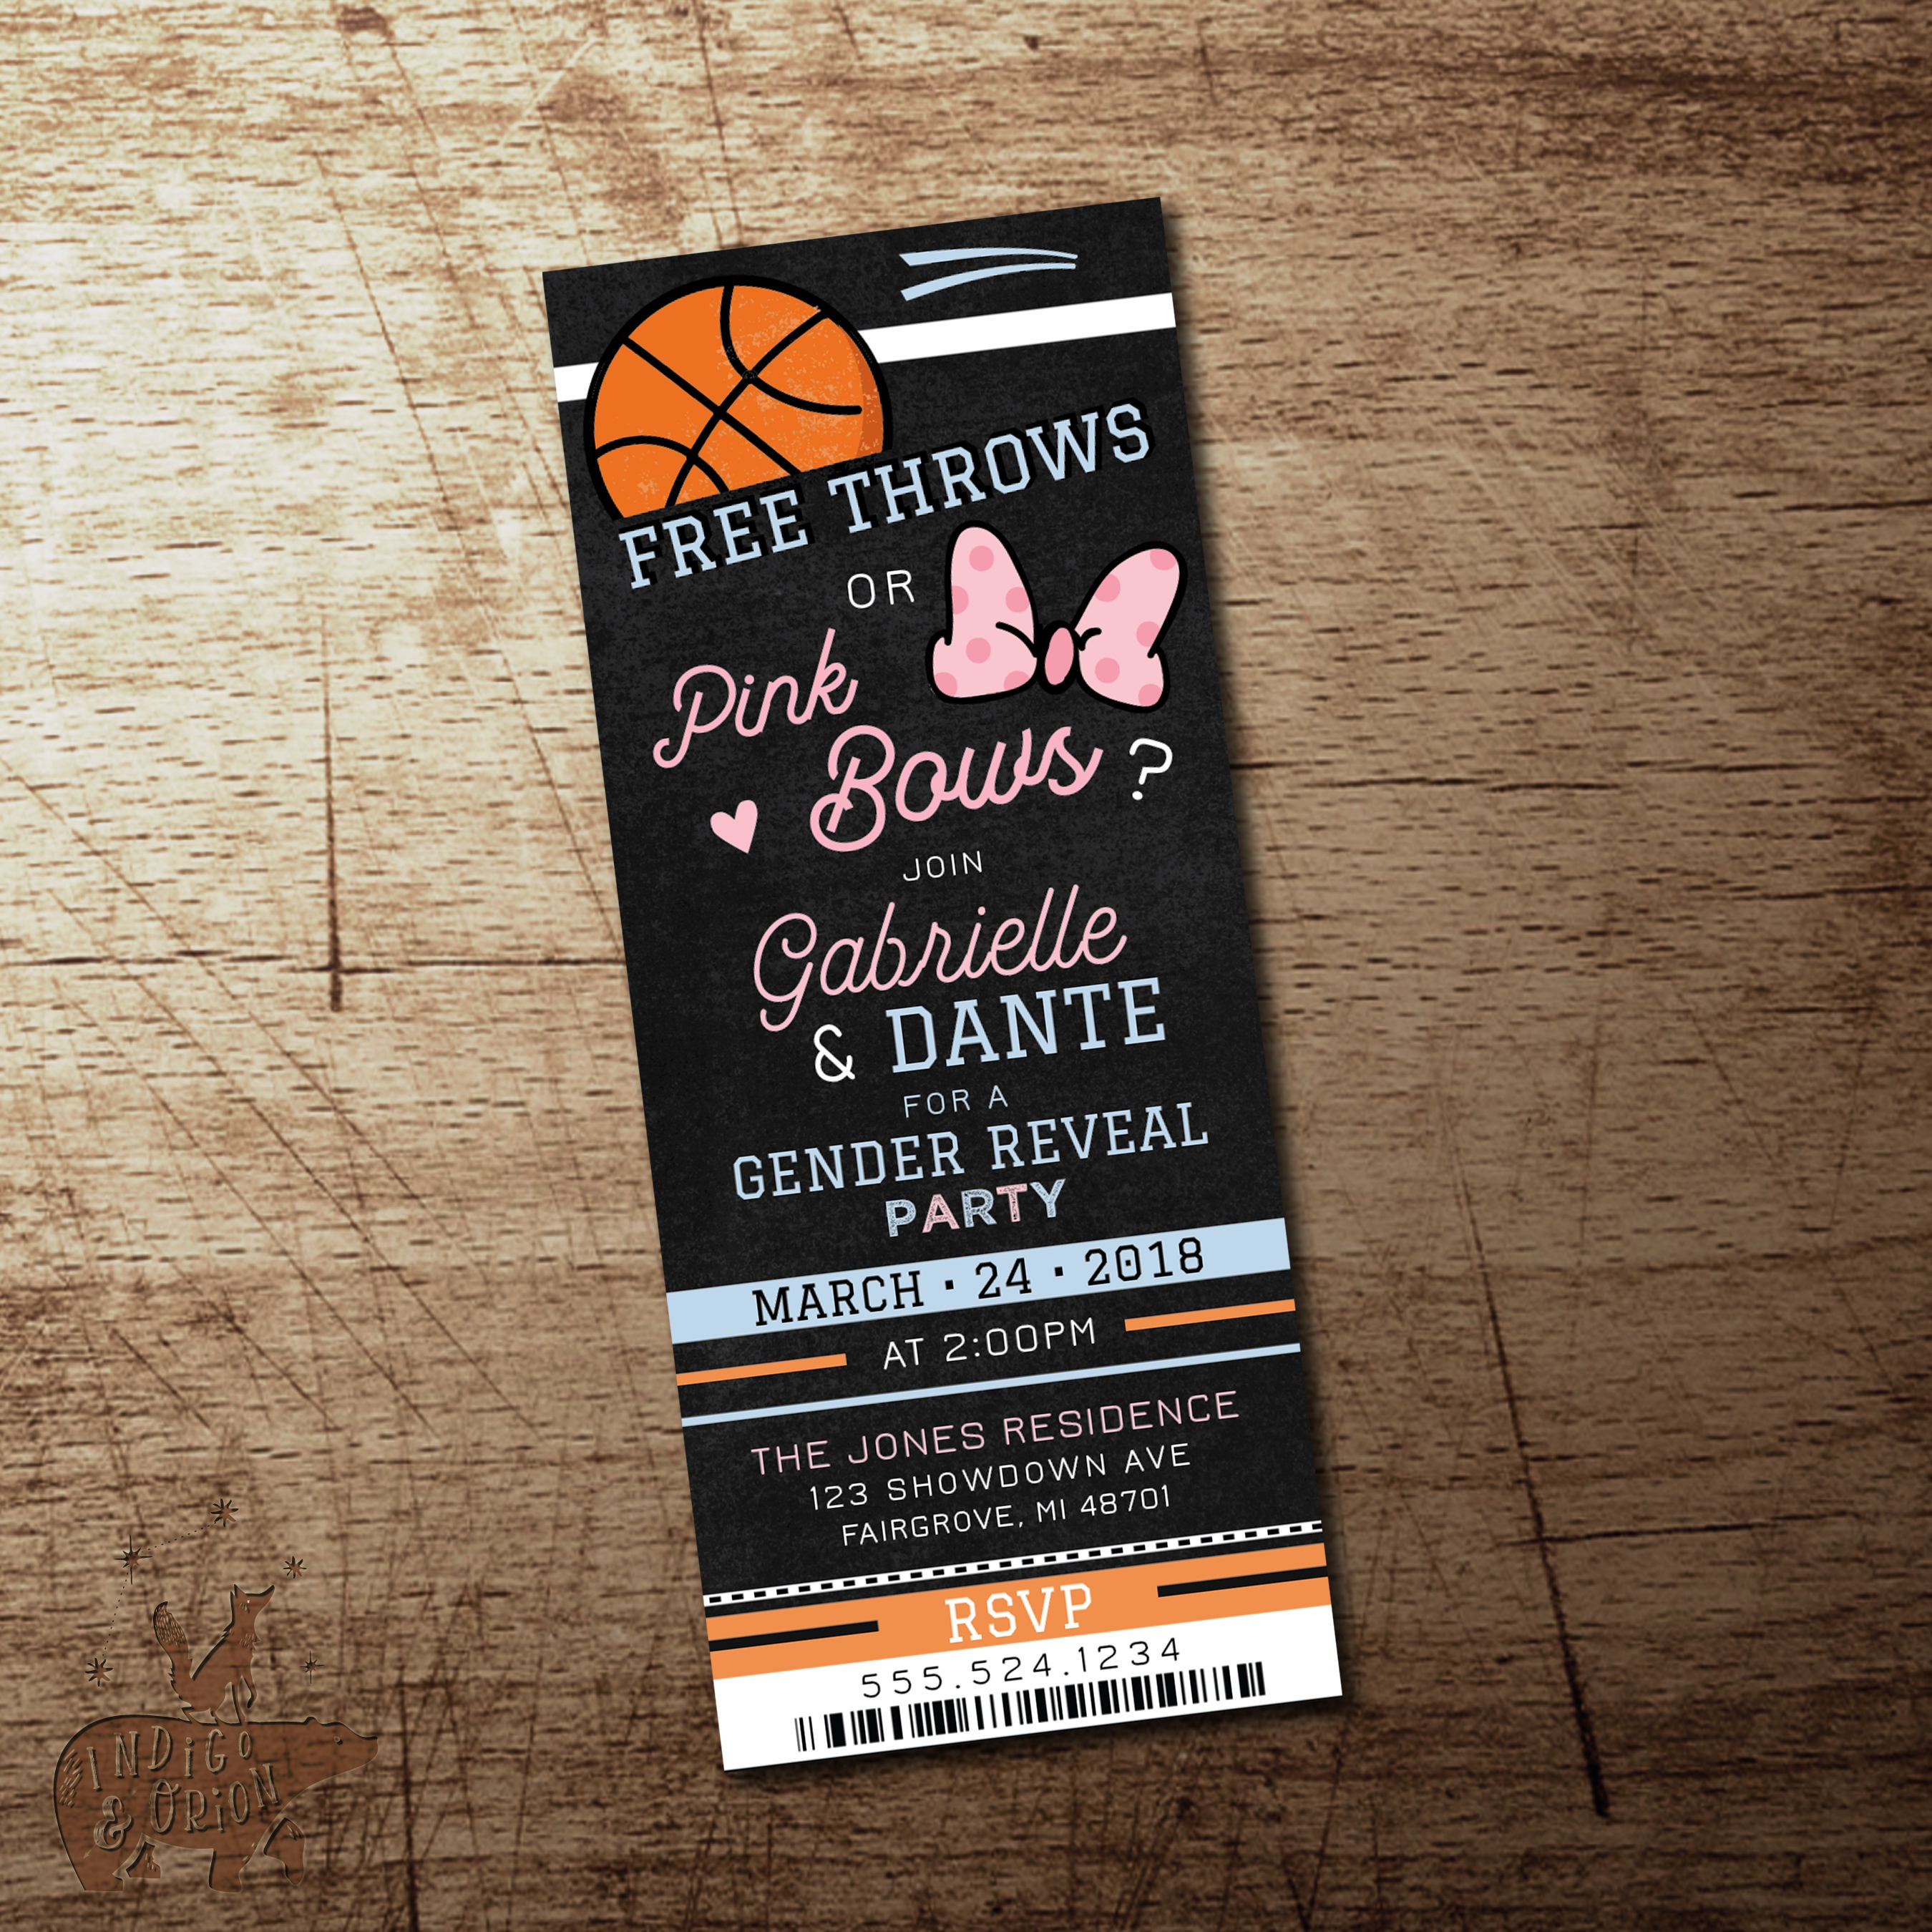 Basketball Gender Reveal Invitation Free Throws Or Pink Bows | Etsy - Free Printable Gender Reveal Invitations